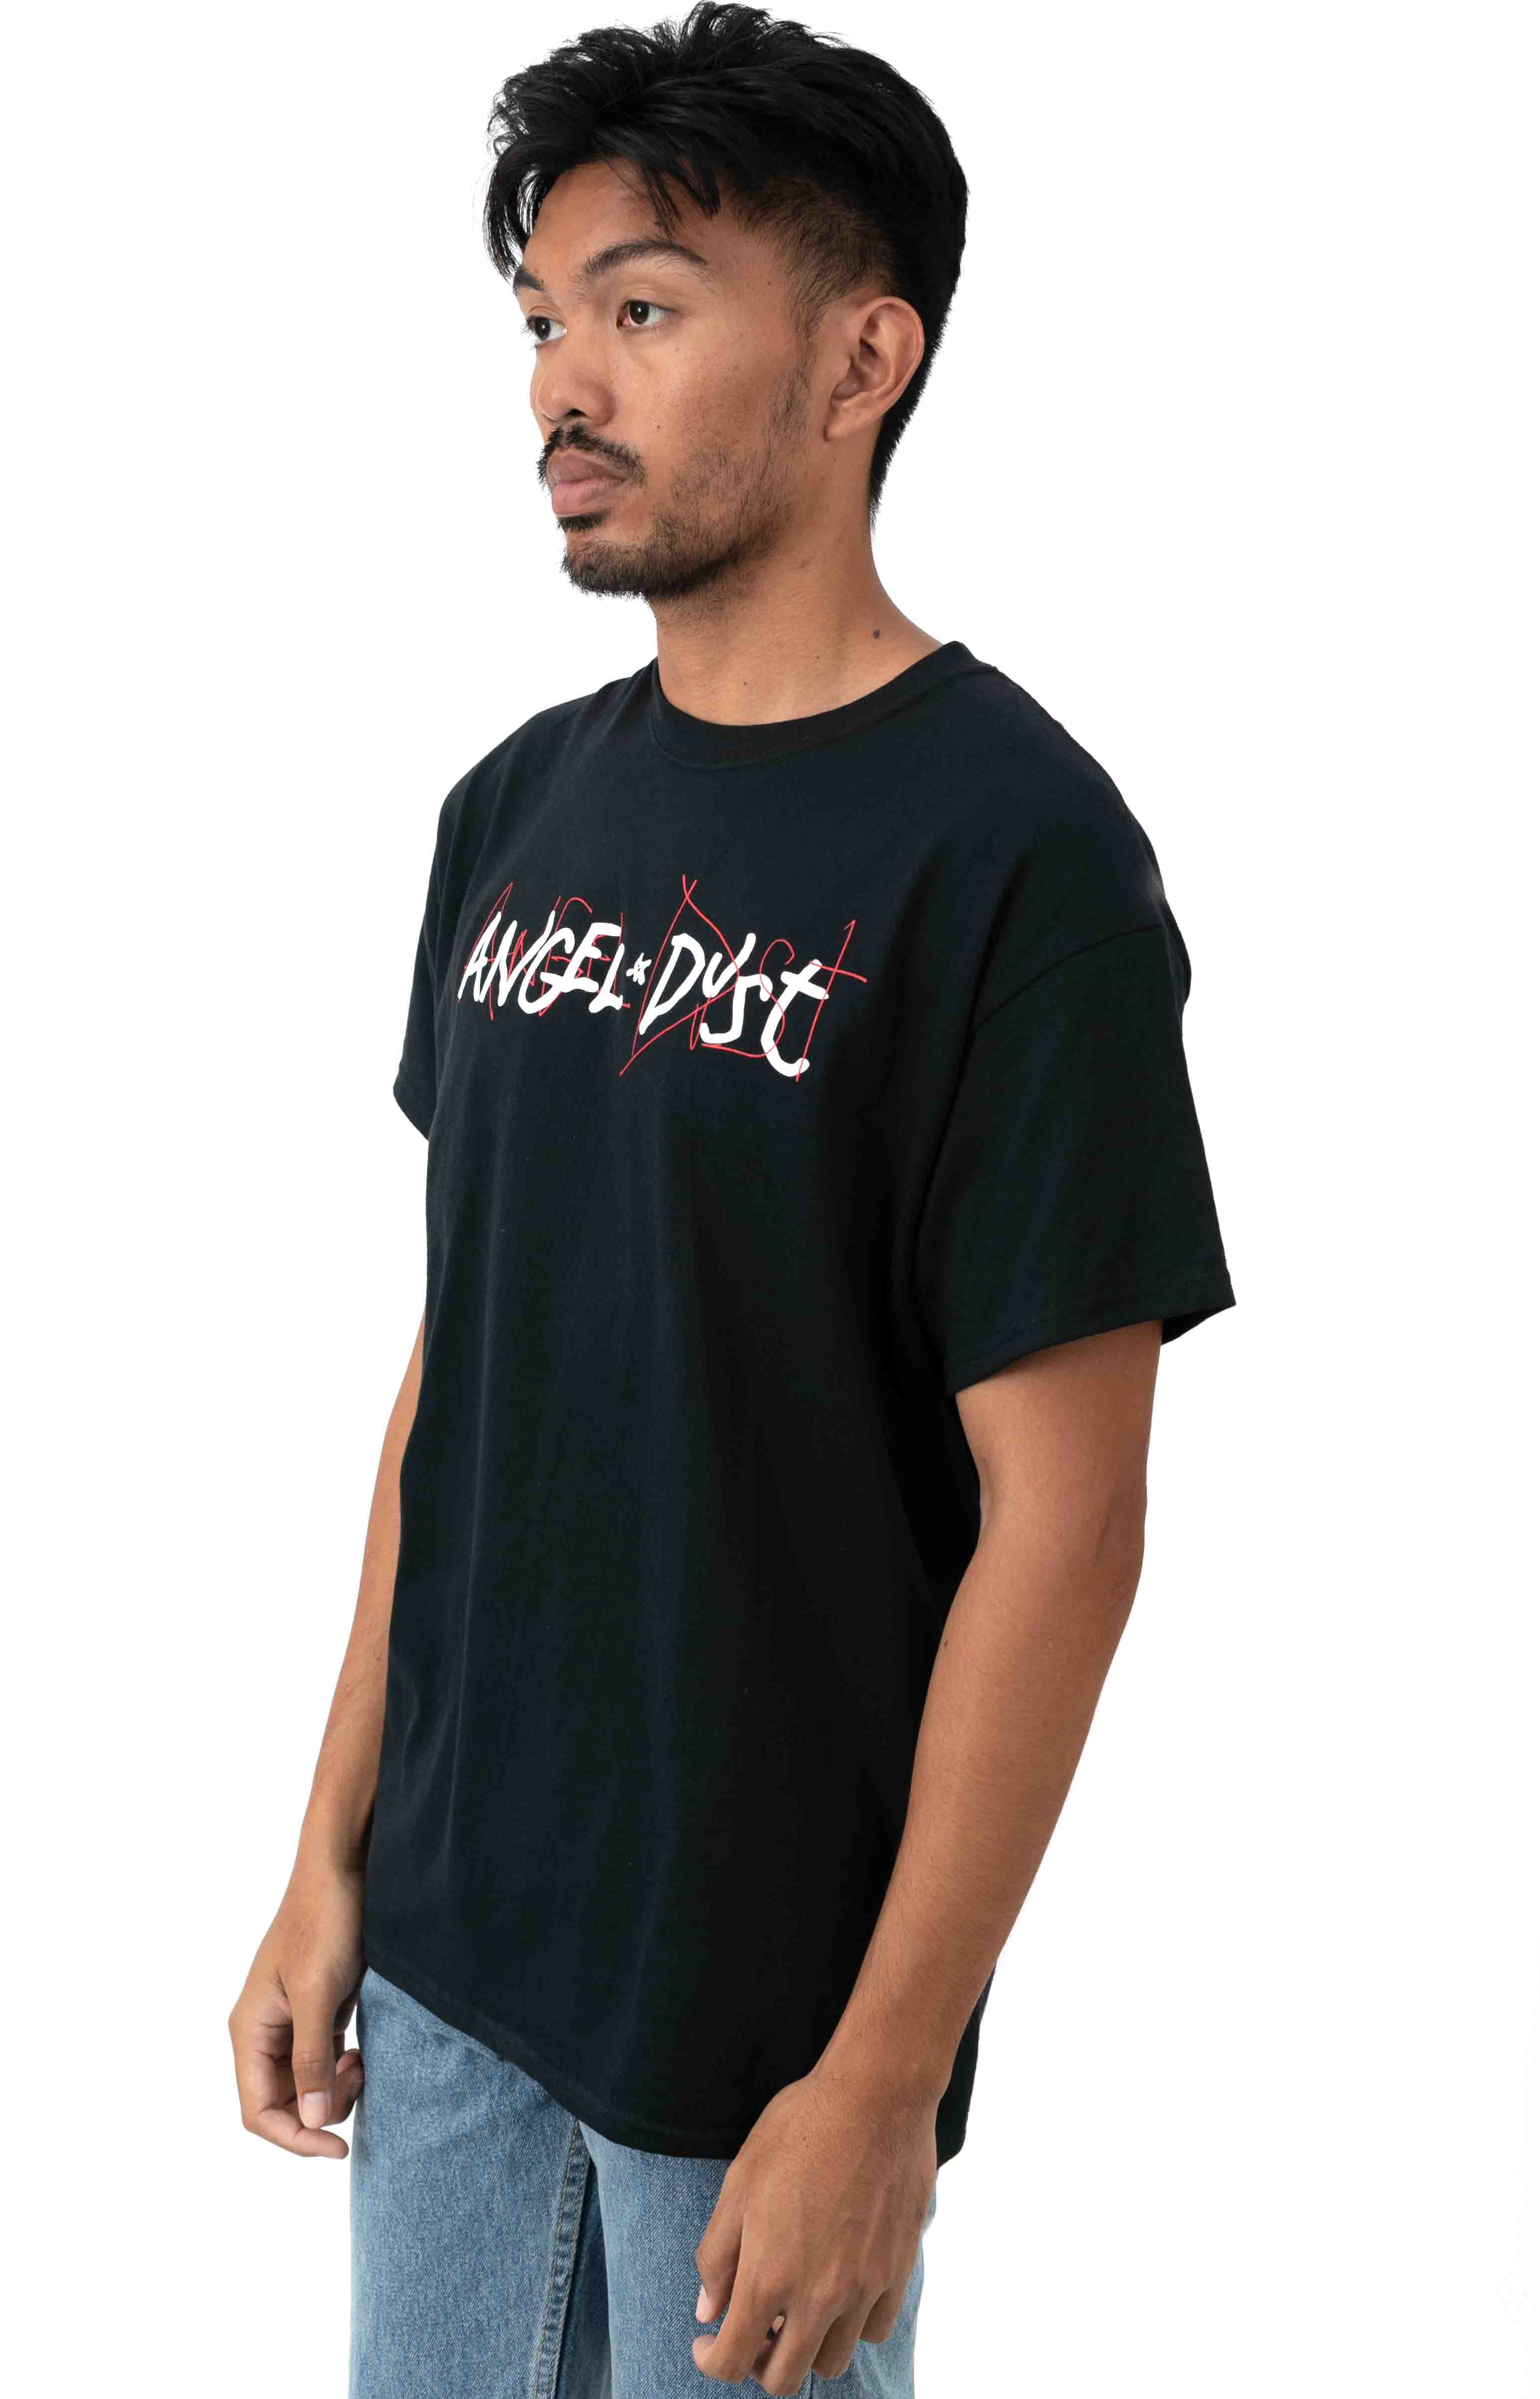 Angel Dust T-Shirt - Black 2